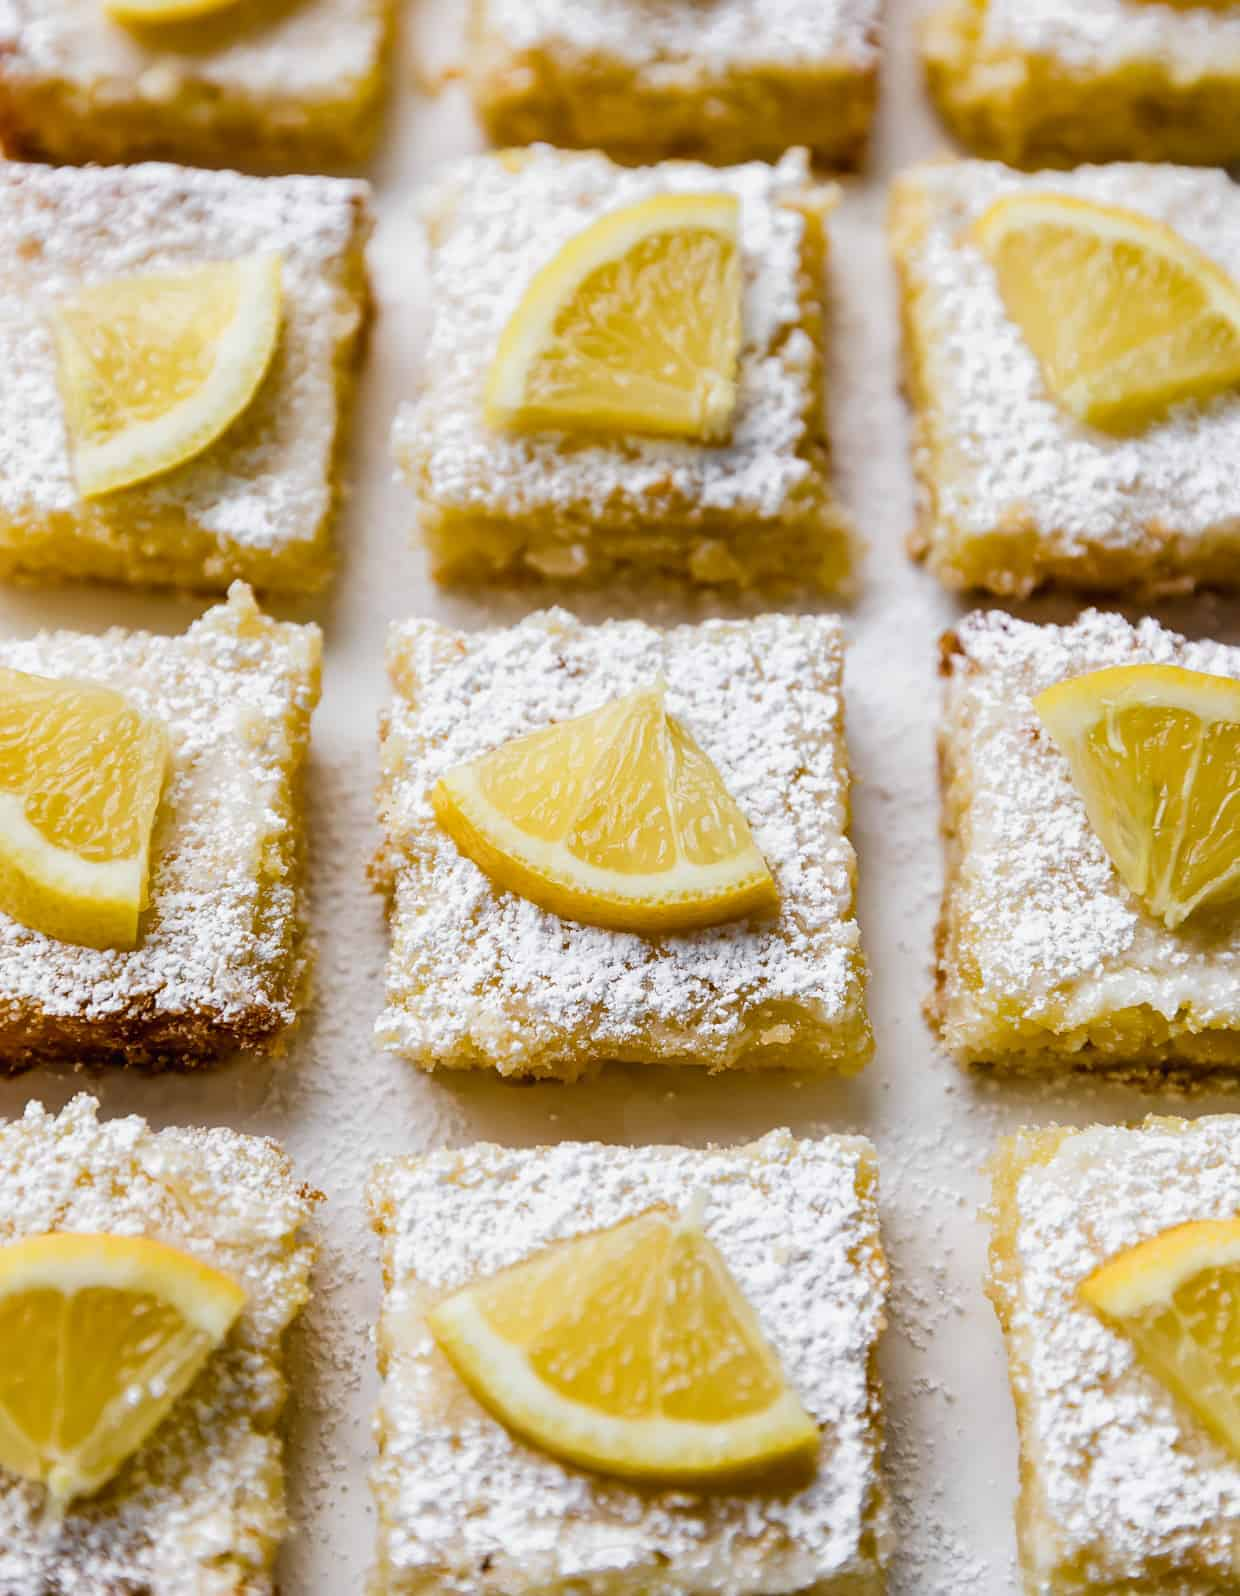 Lemon bars lined up next to one another, each topped with powdered sugar and a fresh slice of lemon.